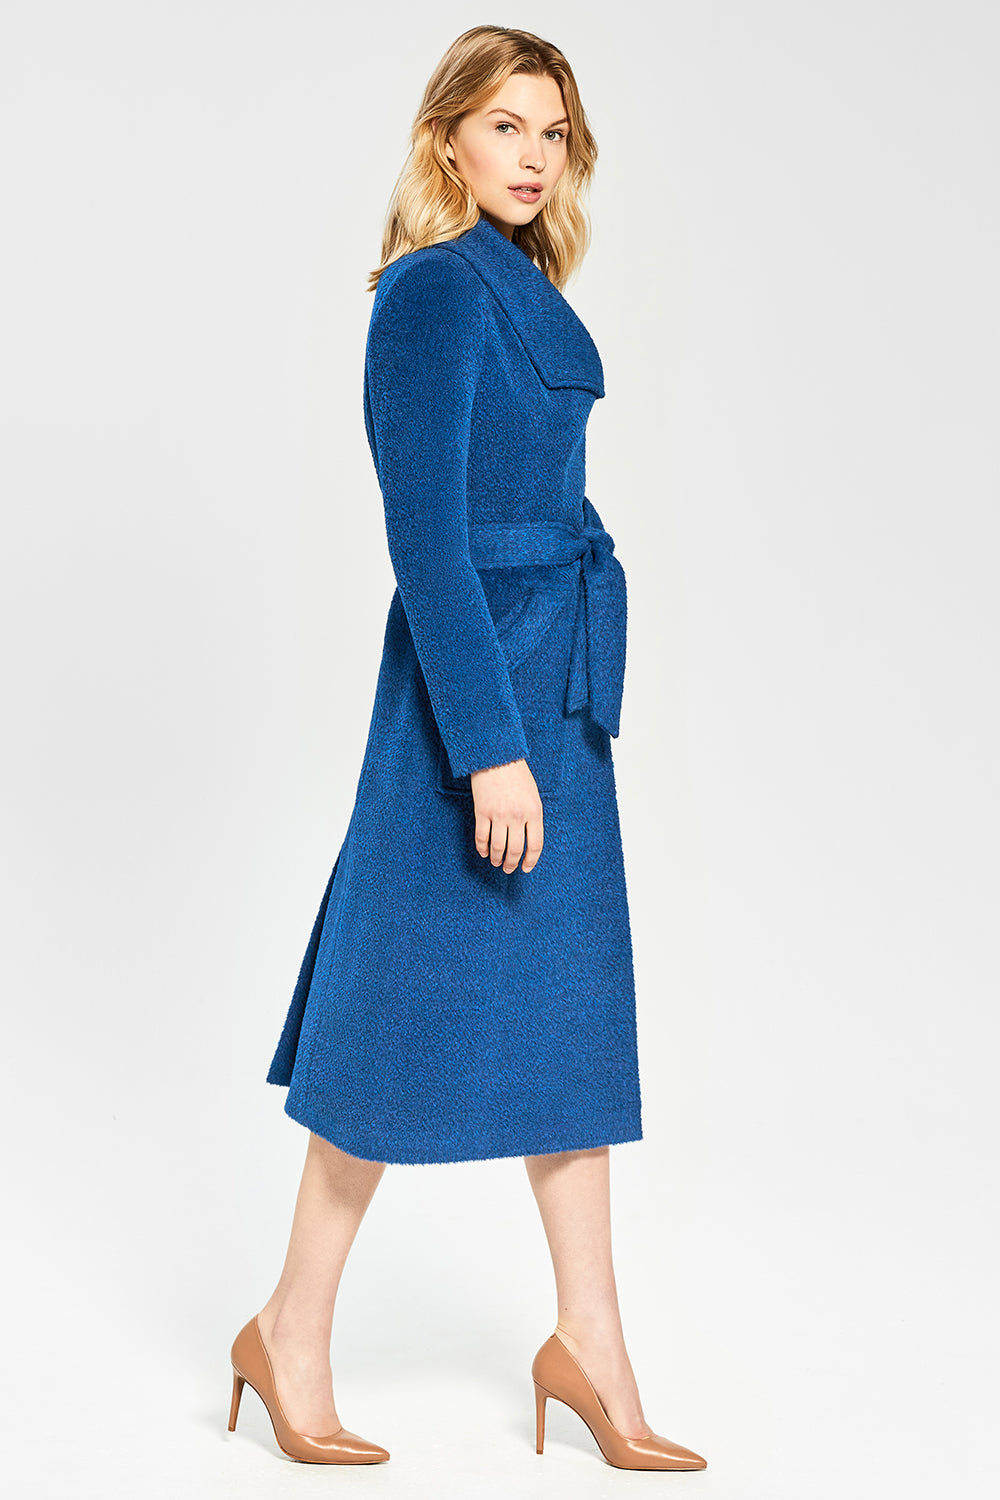 Sentaler Bouclé Alpaca Long Wide Collar Wrap Coat featured in Bouclé Alpaca and available in Classic Blue. Seen from side.